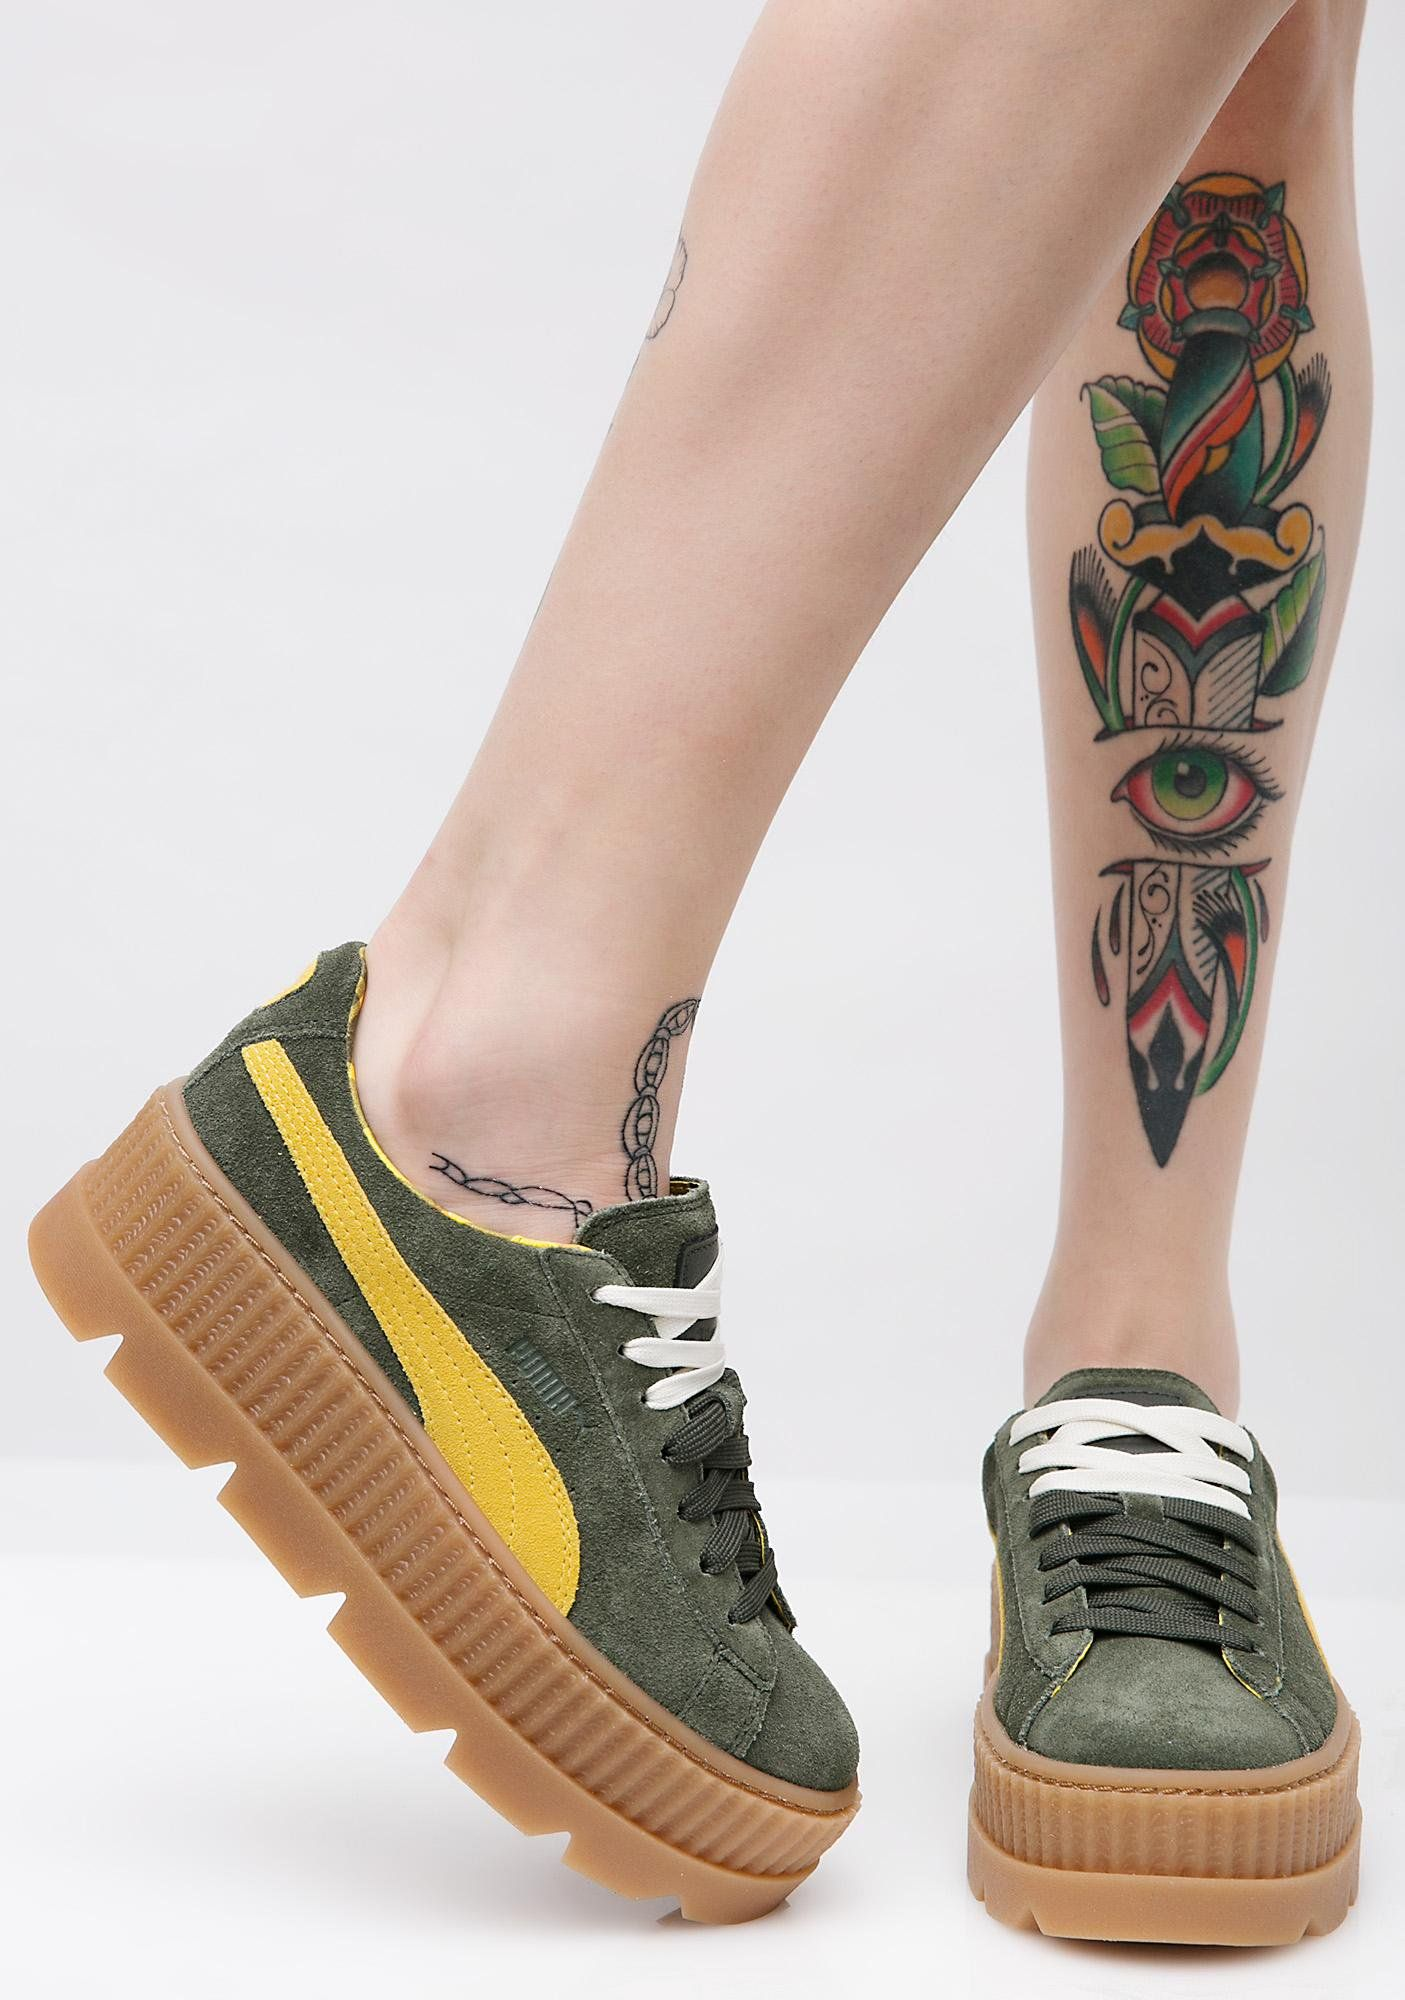 8c6dd16422b PUMA Pine FENTY PUMA By Rihanna Cleated Suede Creepers will take ya up a  notch. These green platform creeper sneakers have thikk cleated soles and a  lace-up ...